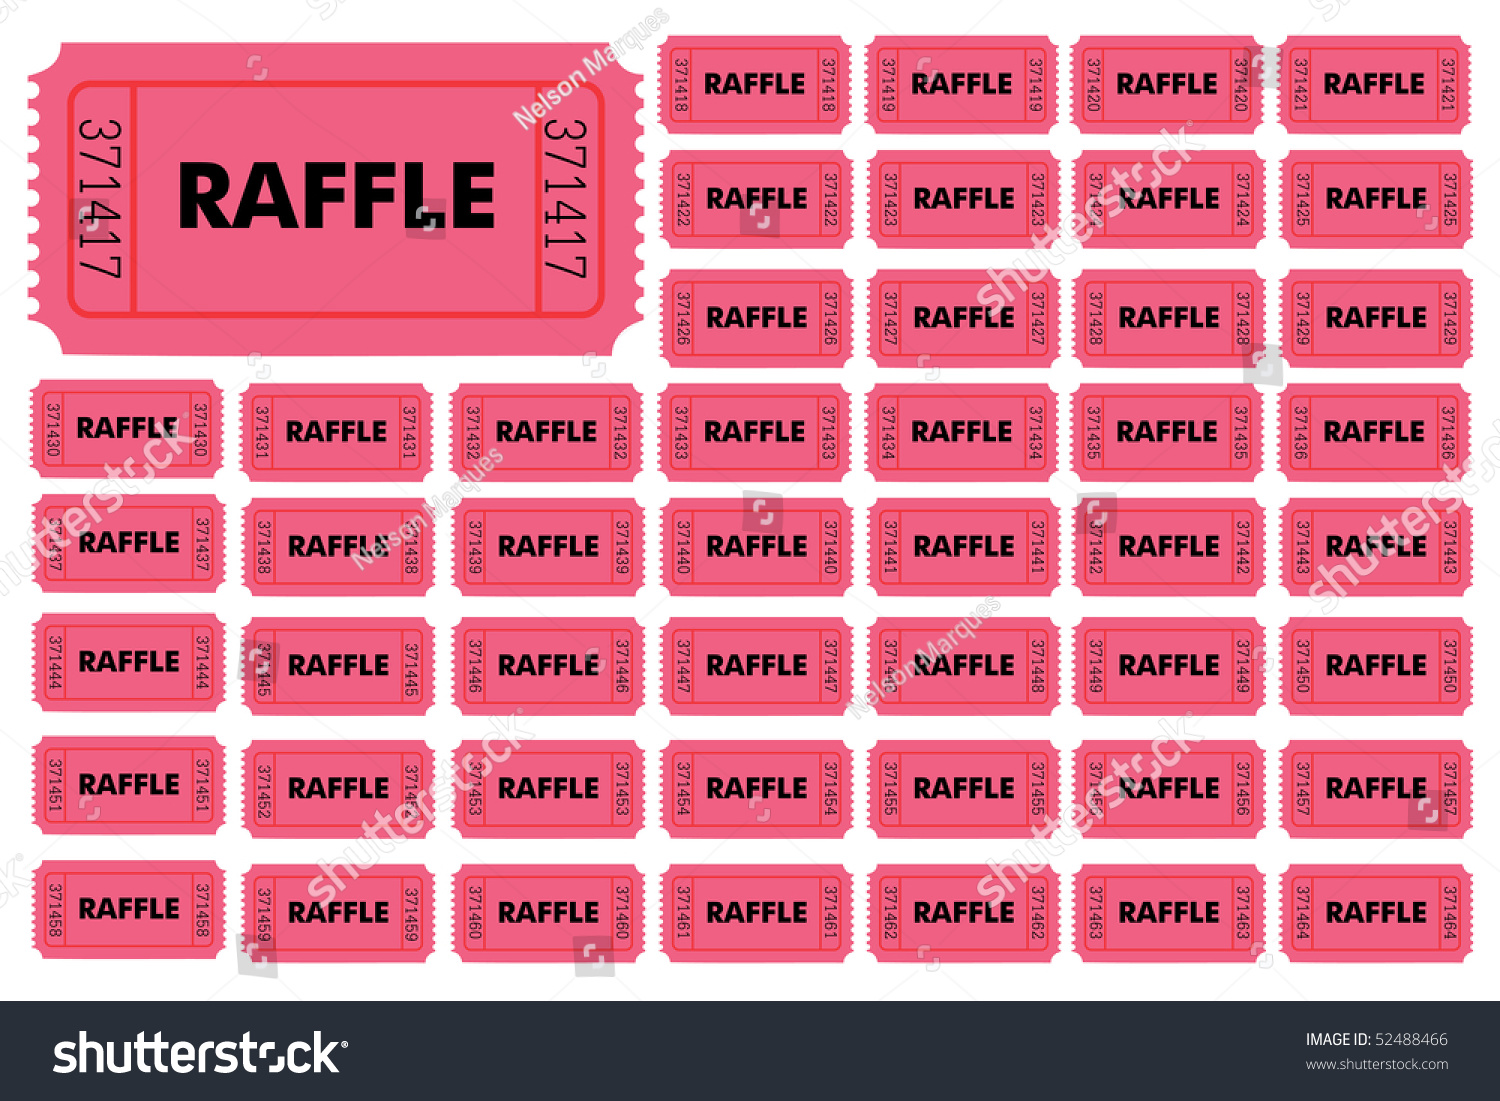 raffle tickets hold your own raffle stock vector  raffle tickets hold your own raffle